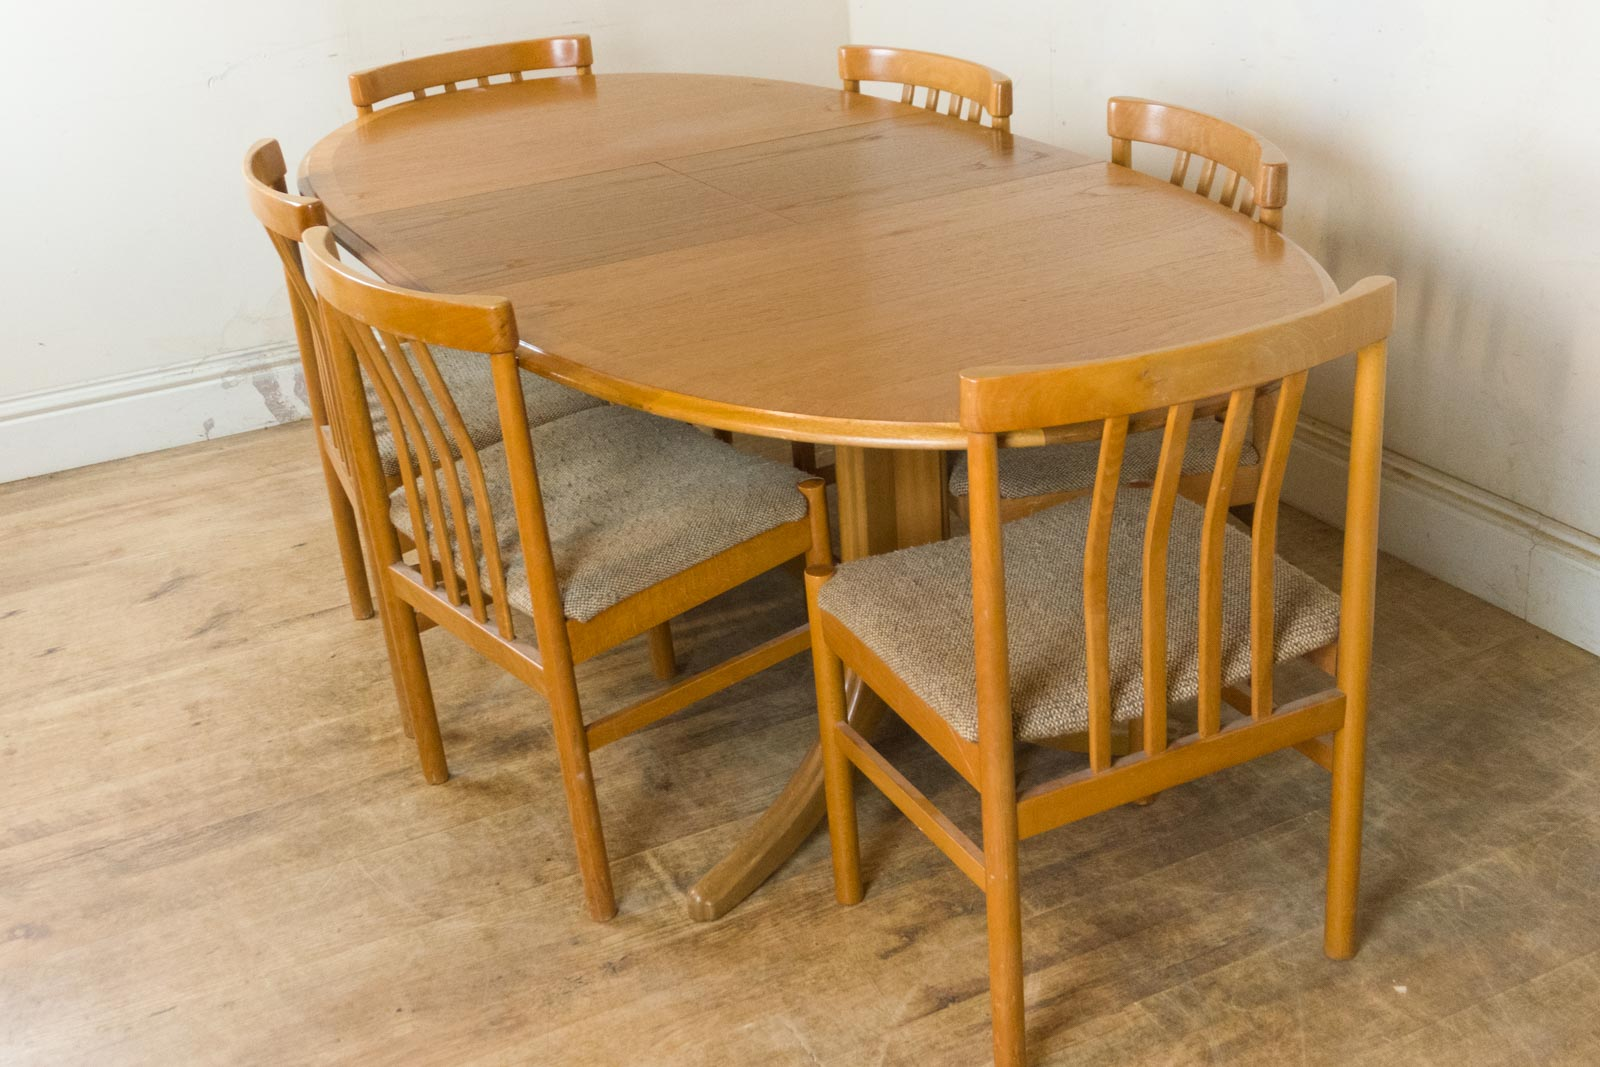 Vintage Retro Nathan Teak Extending Table and 6 Danish  : HV200802 10 from www.ebay.co.uk size 1600 x 1067 jpeg 235kB